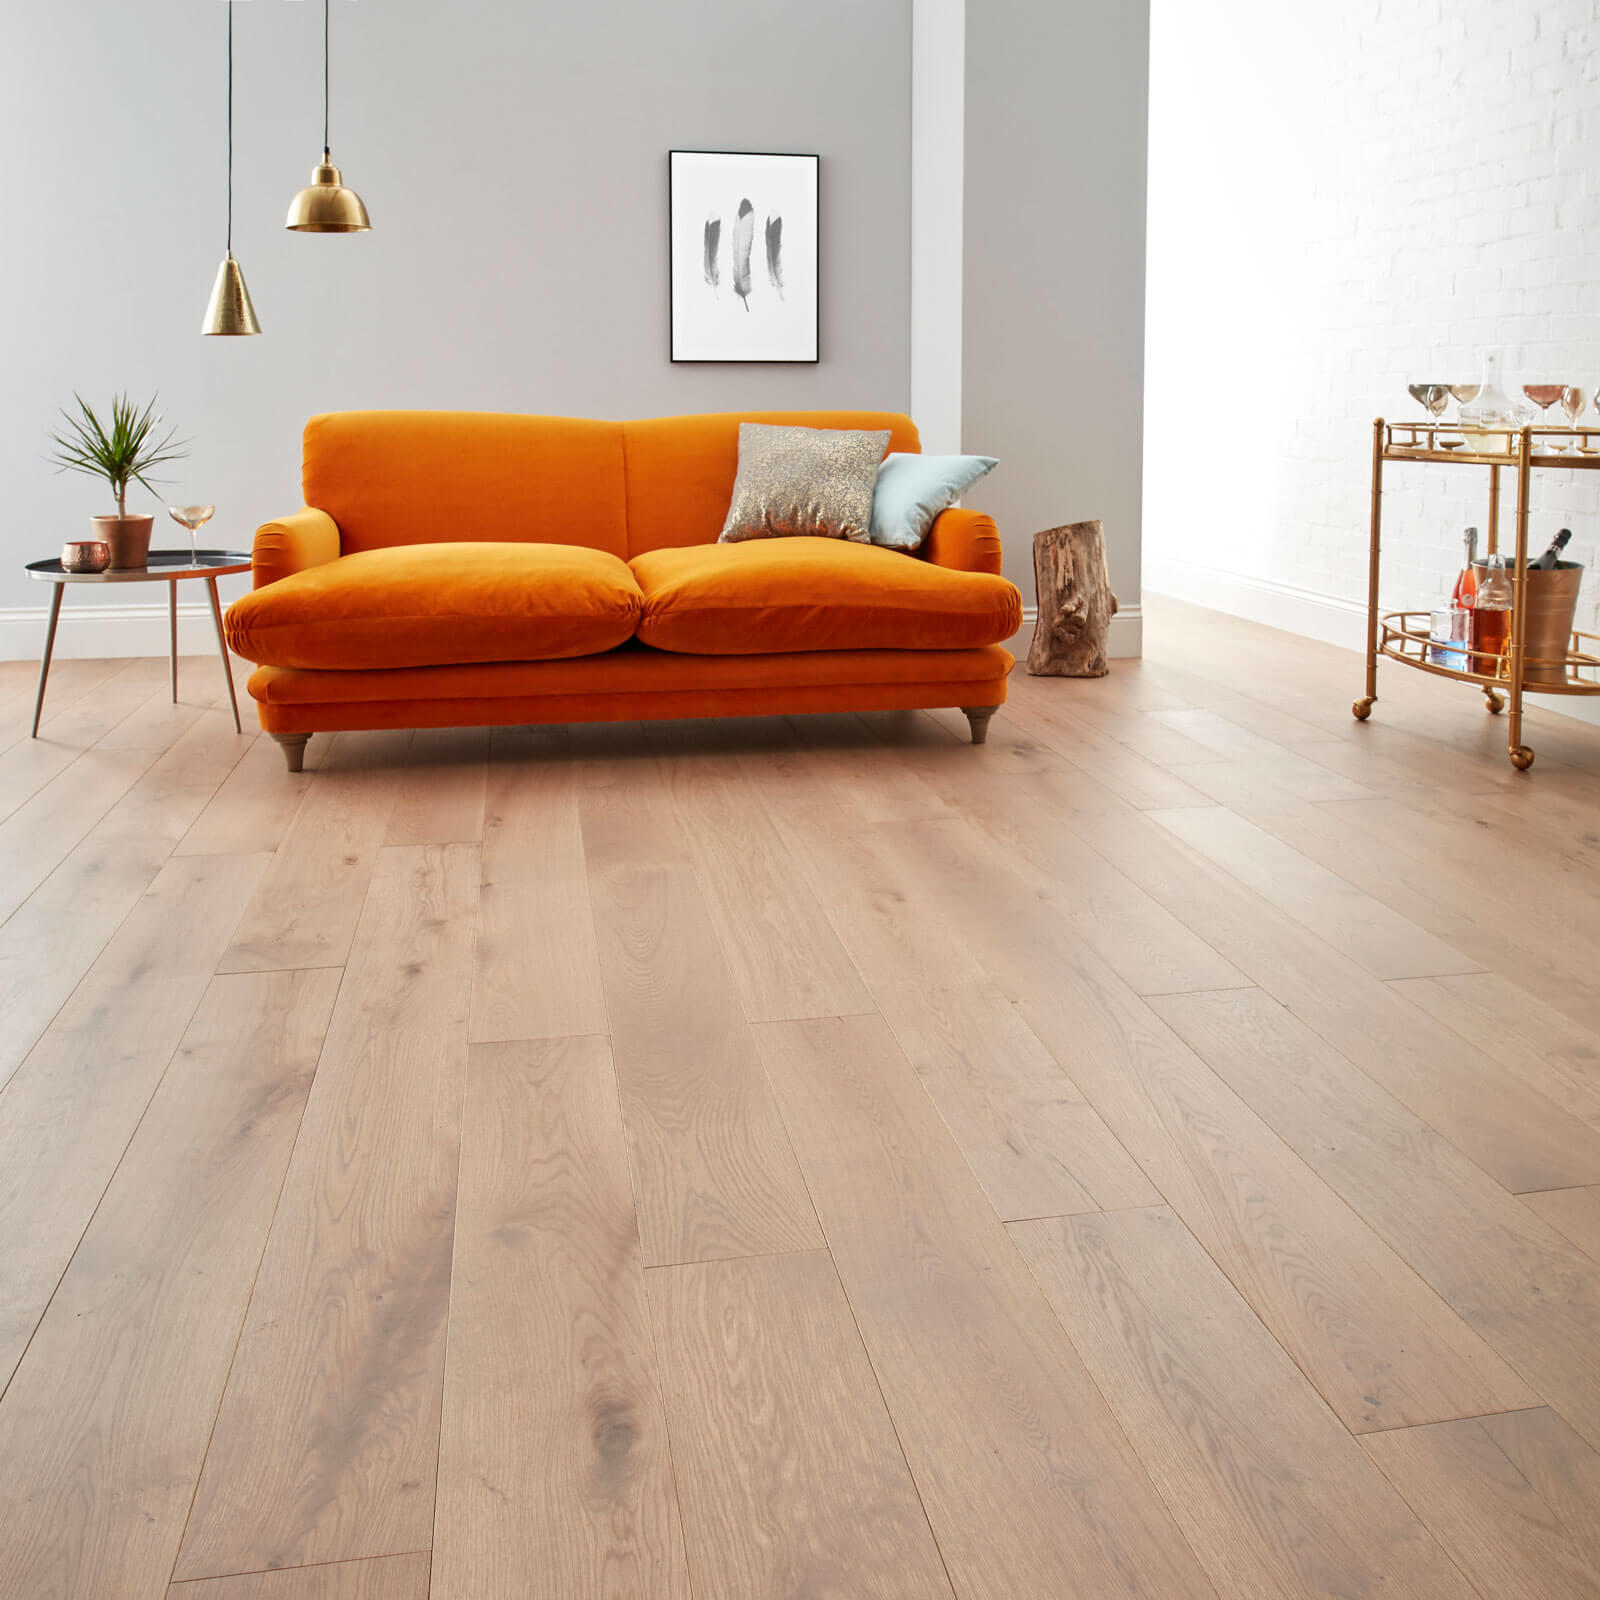 Woodpecker Chepstow Planed Grey Oak Hardwax Oiled Engineered Wood Flooring 189mm 65-POG-001